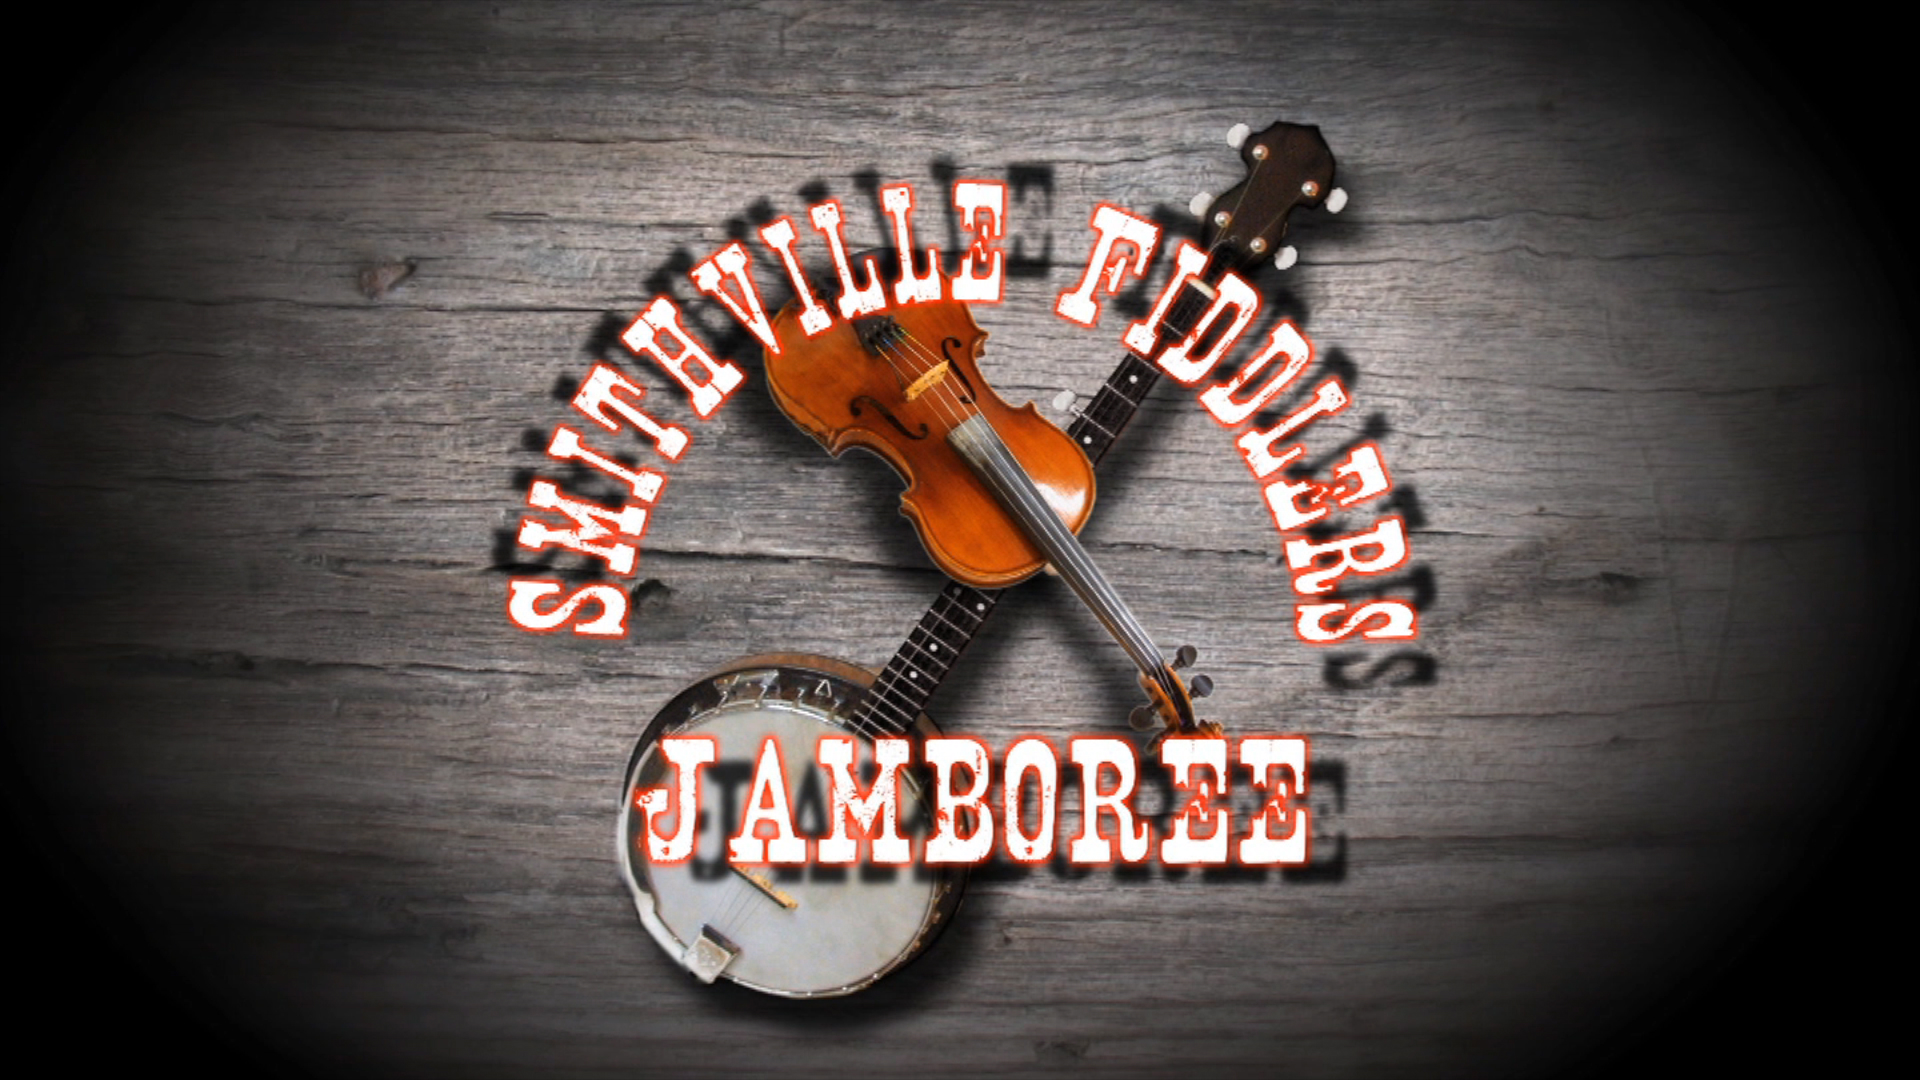 LIVE coverage of the Smithville Fiddlers Jamboree